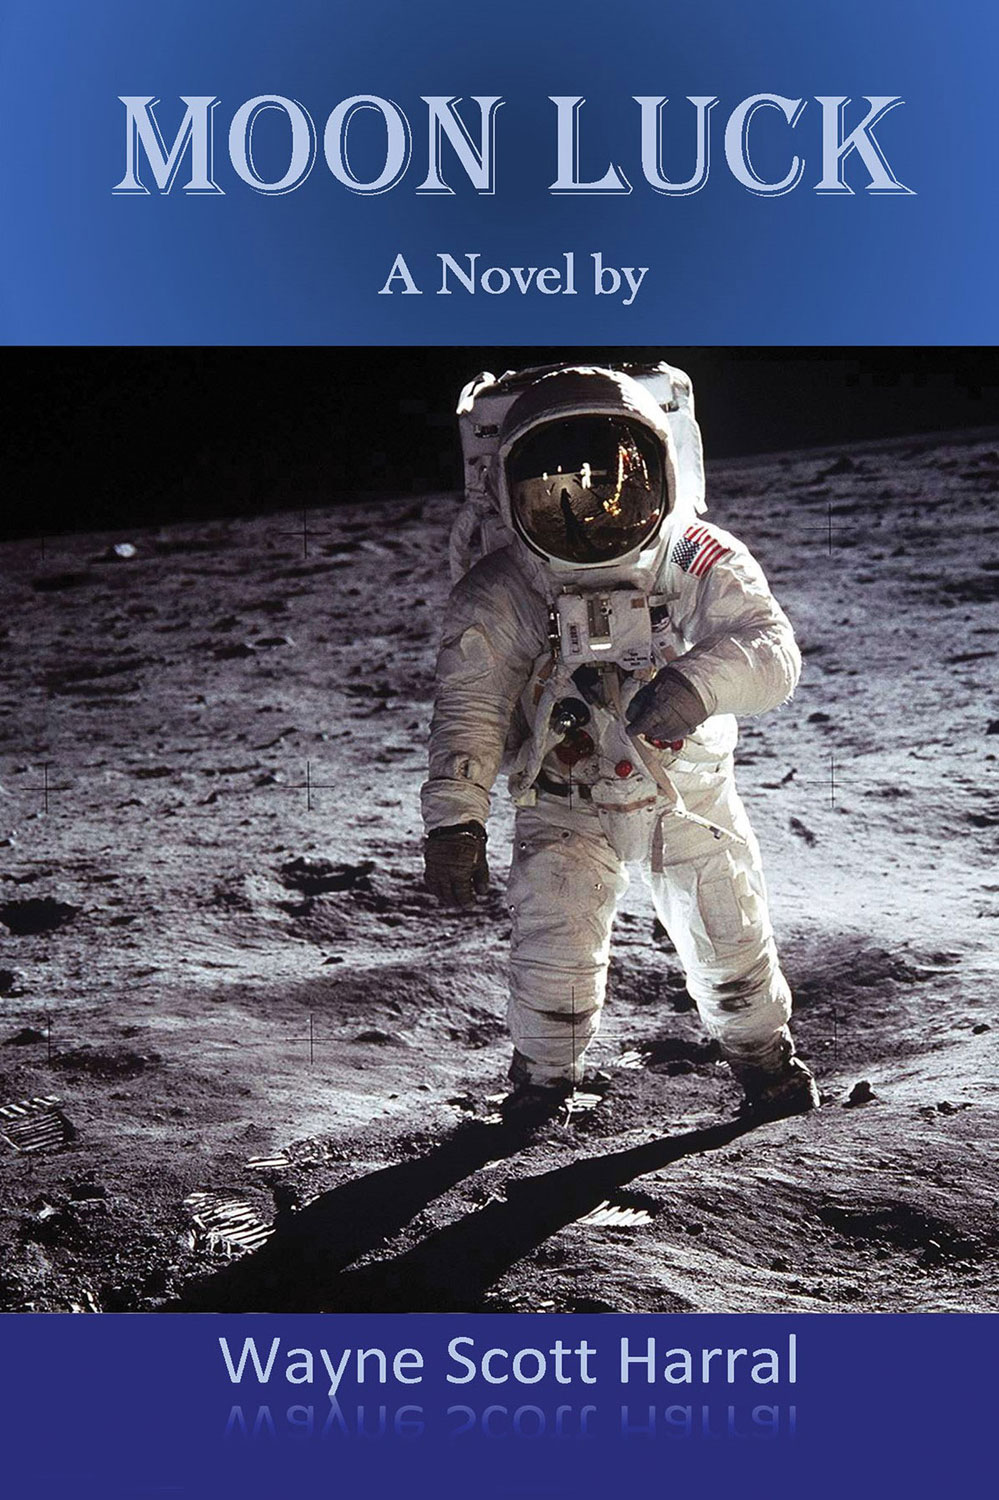 Story of astronauts living on the moon